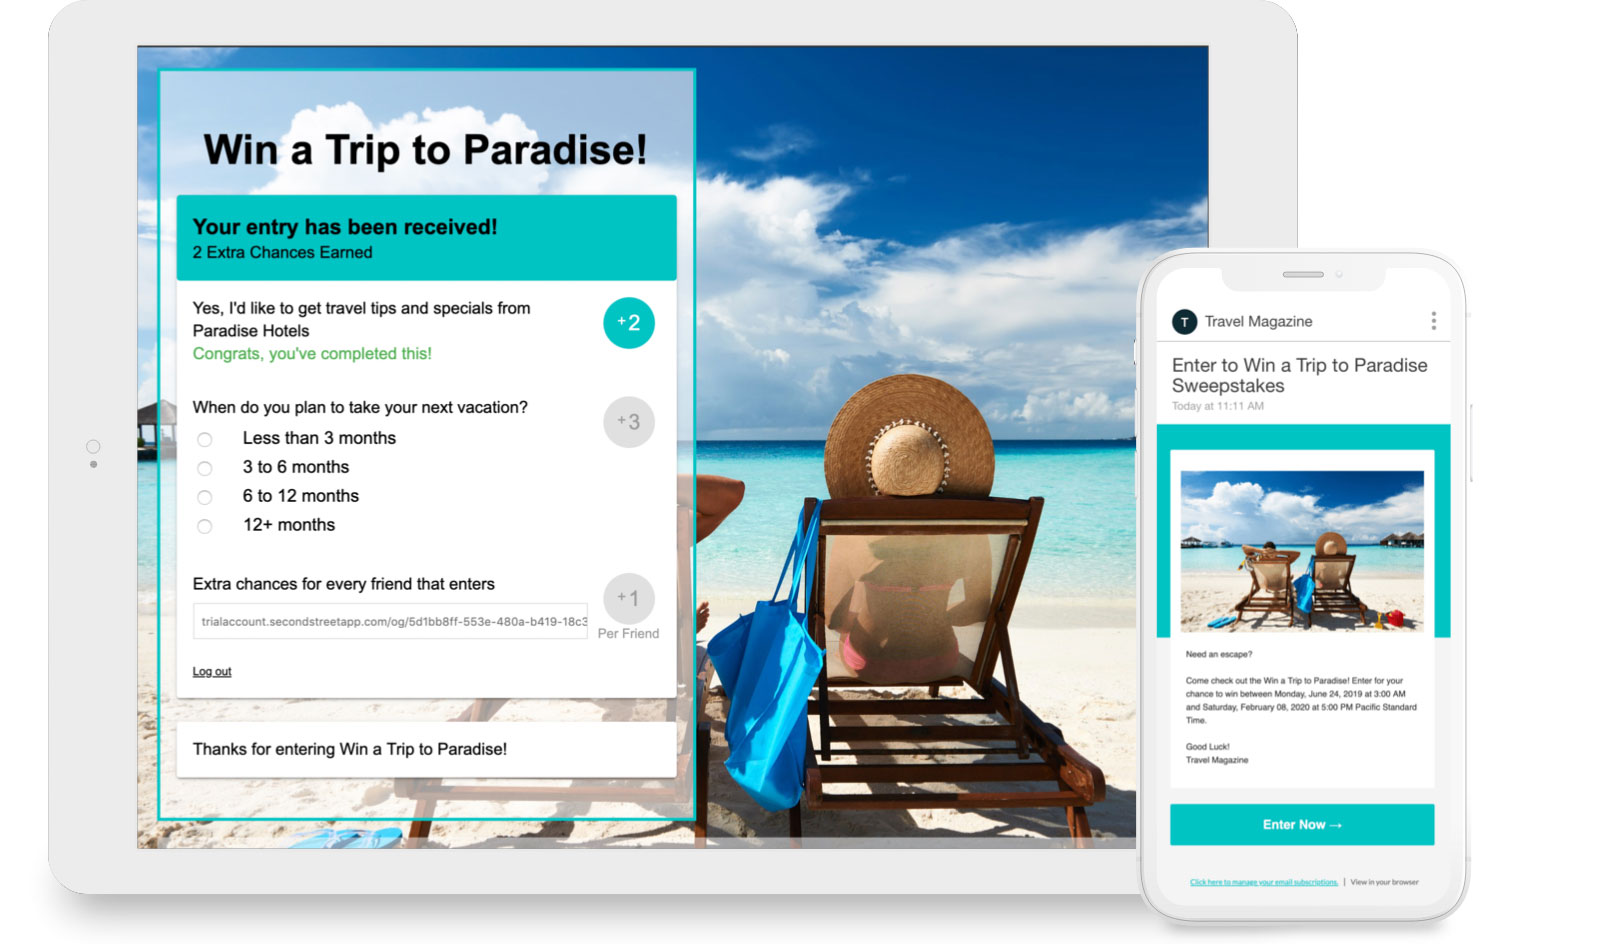 Win a Trip to Paradise sweepstakes with extra chances and an invite email.